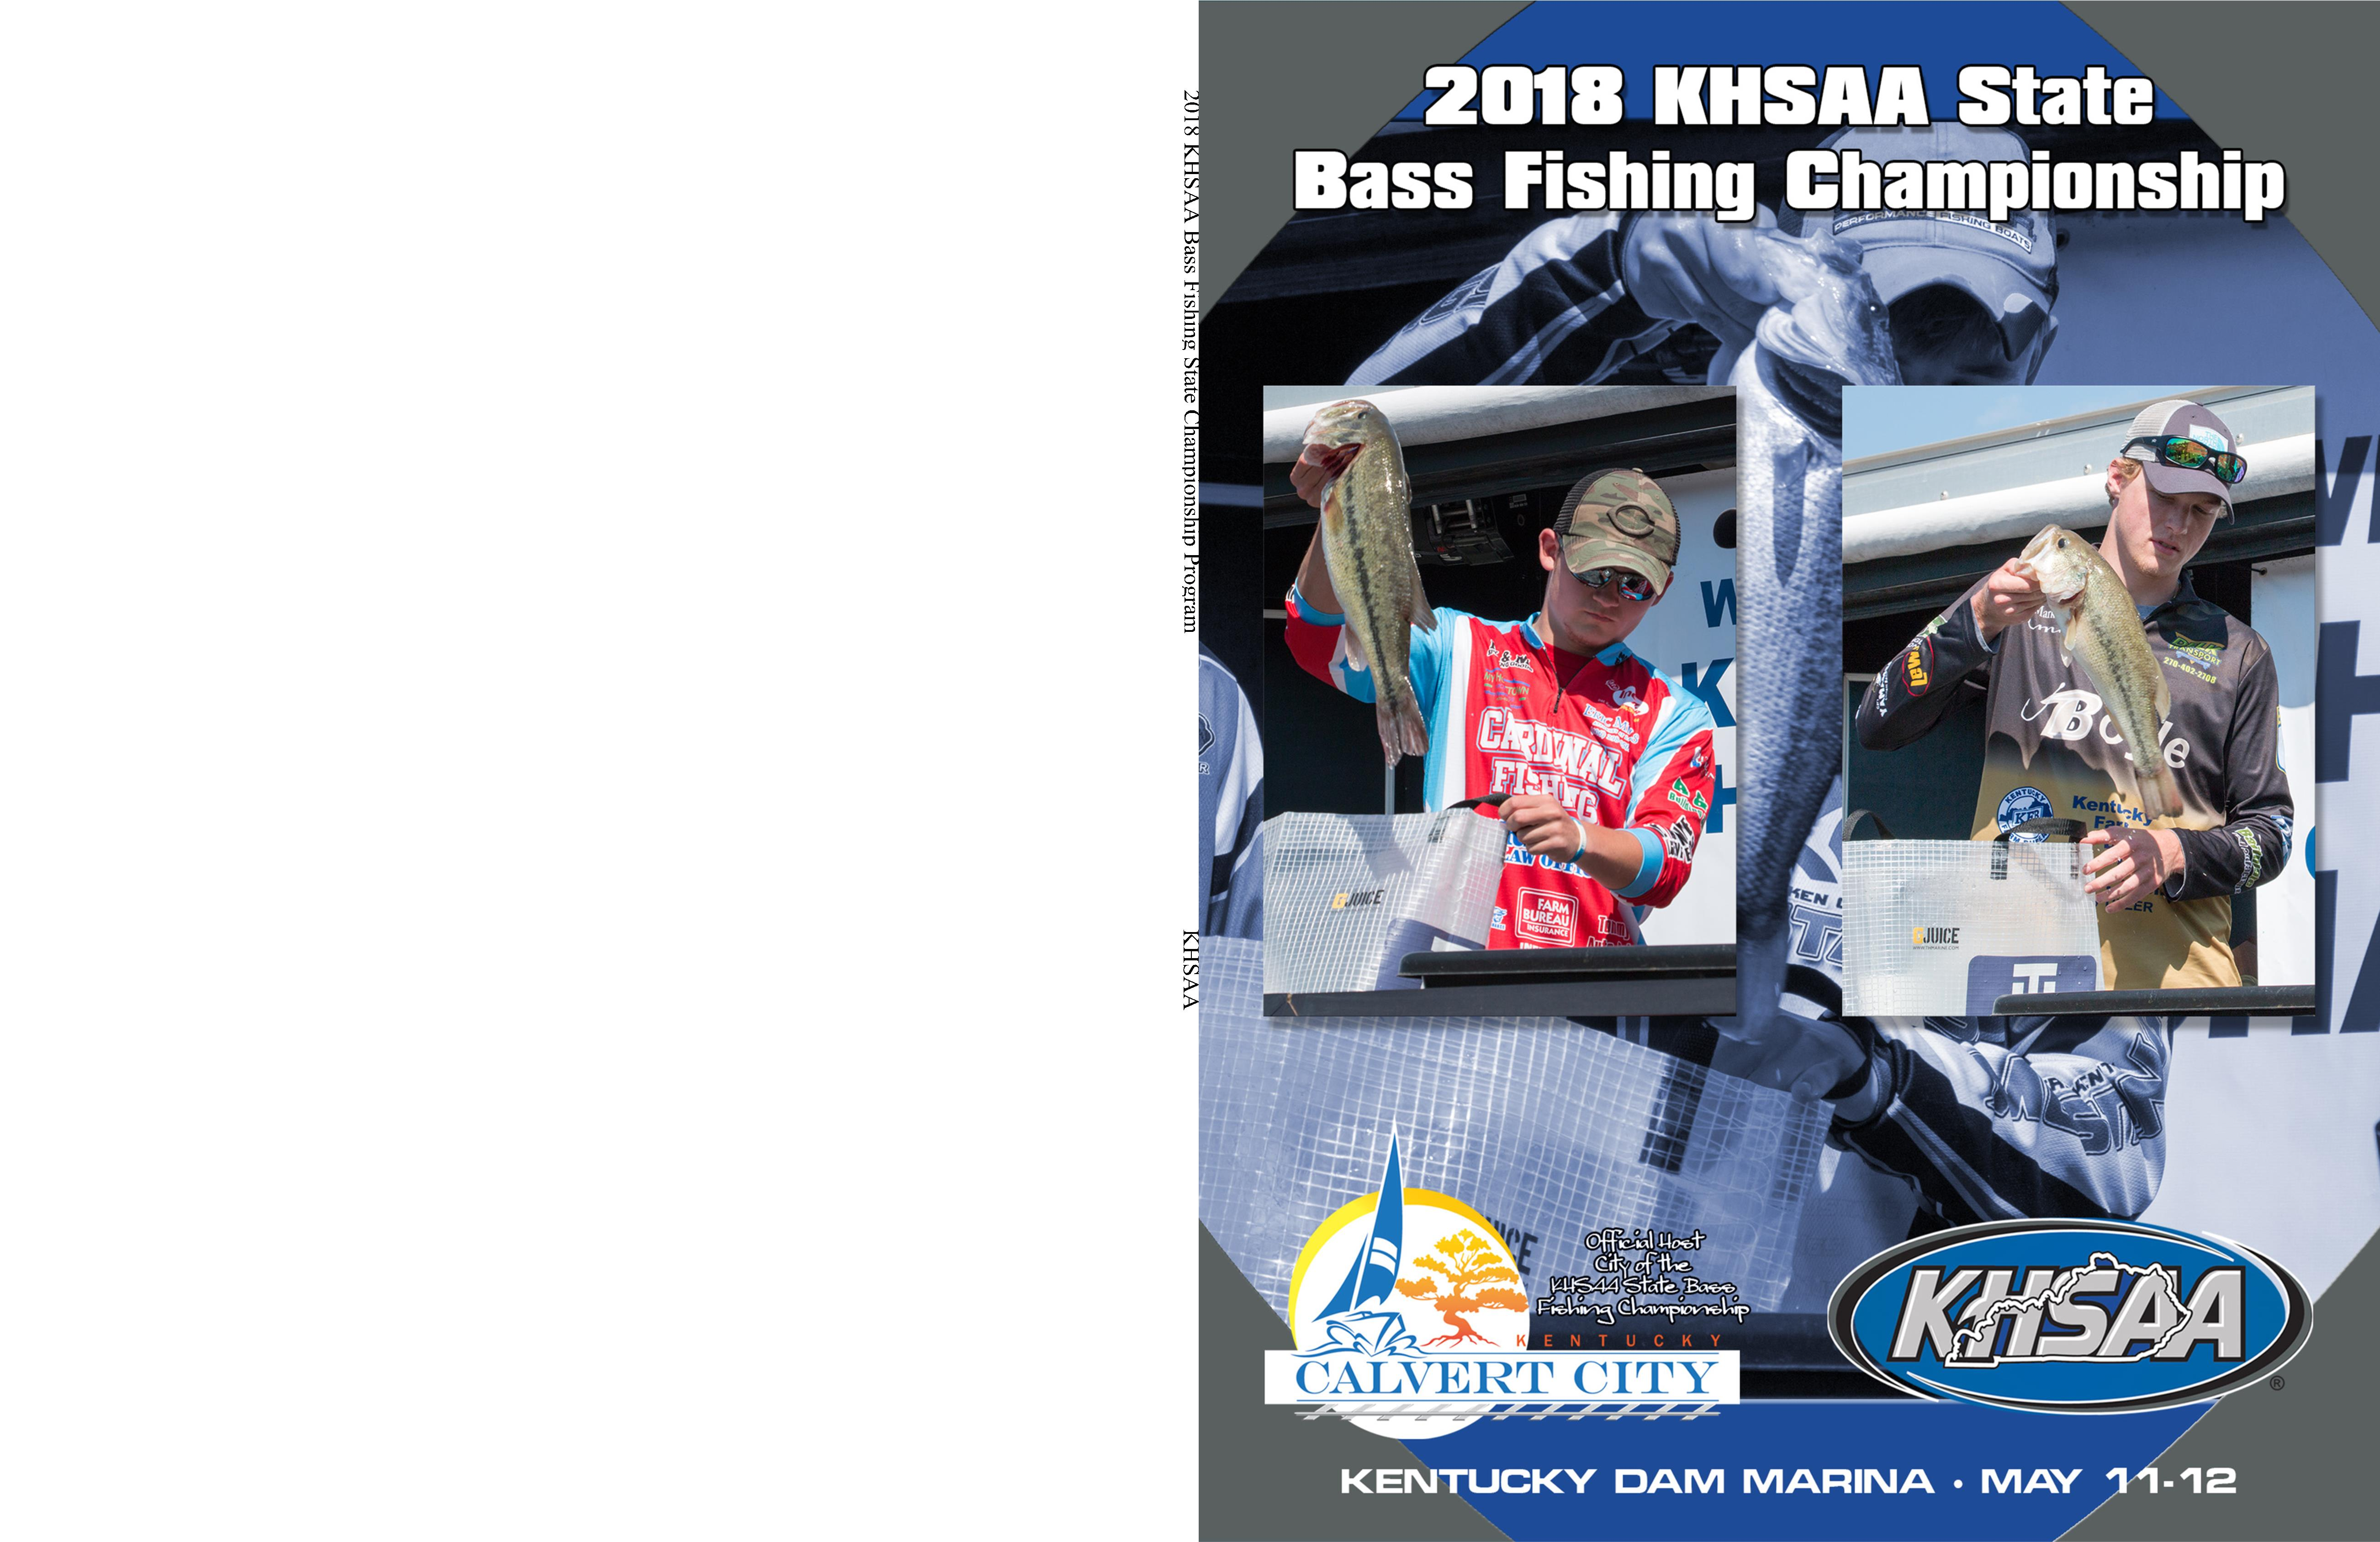 2018 KHSAA Bass Fishing State Championship Program cover image